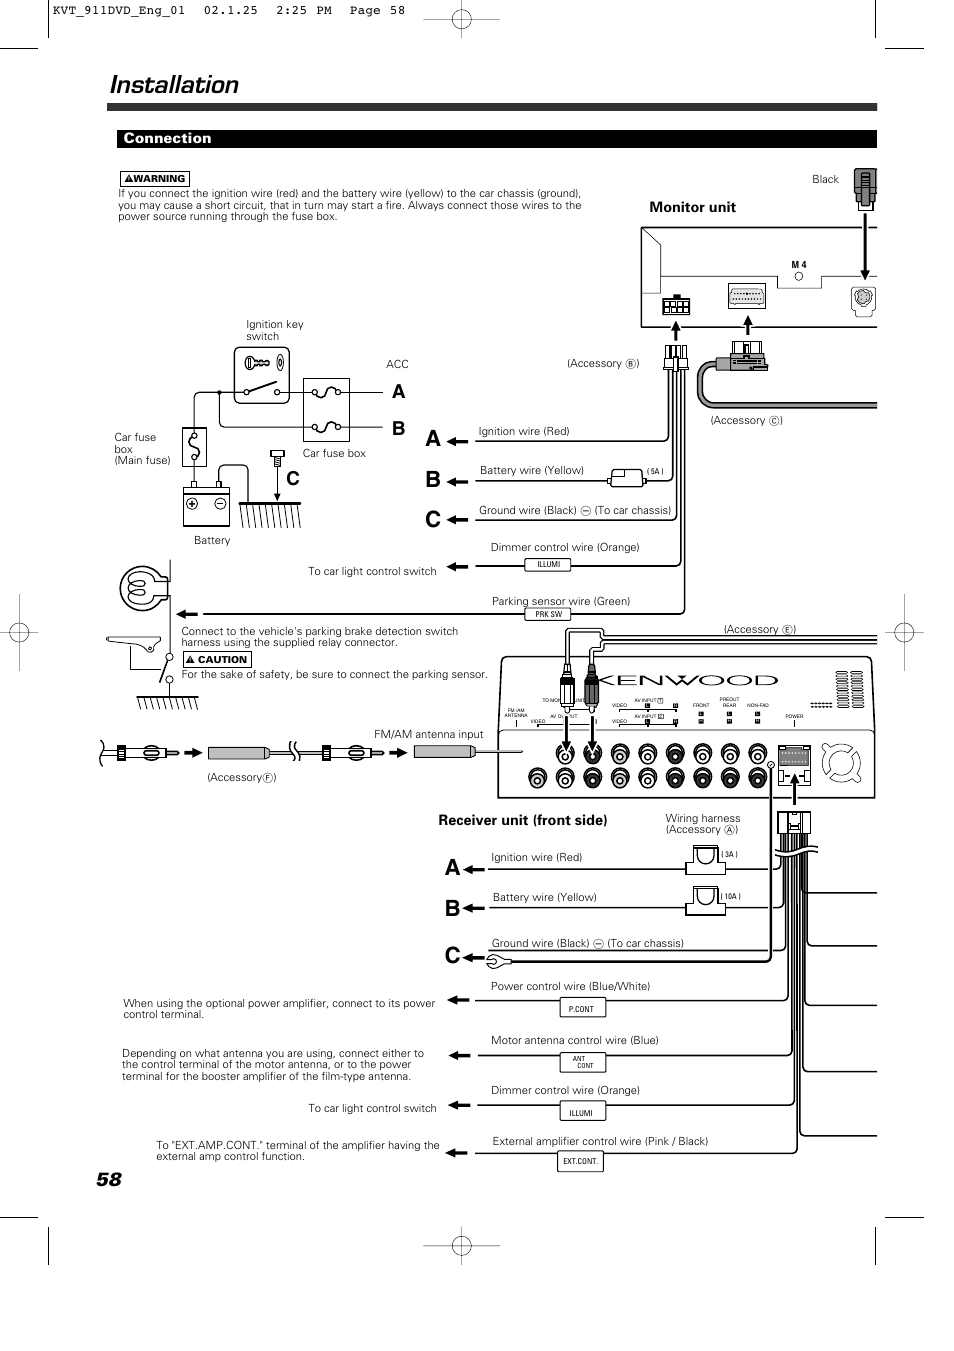 Kenwood Wiring Diagram: Kenwood kdc wiring diagram images